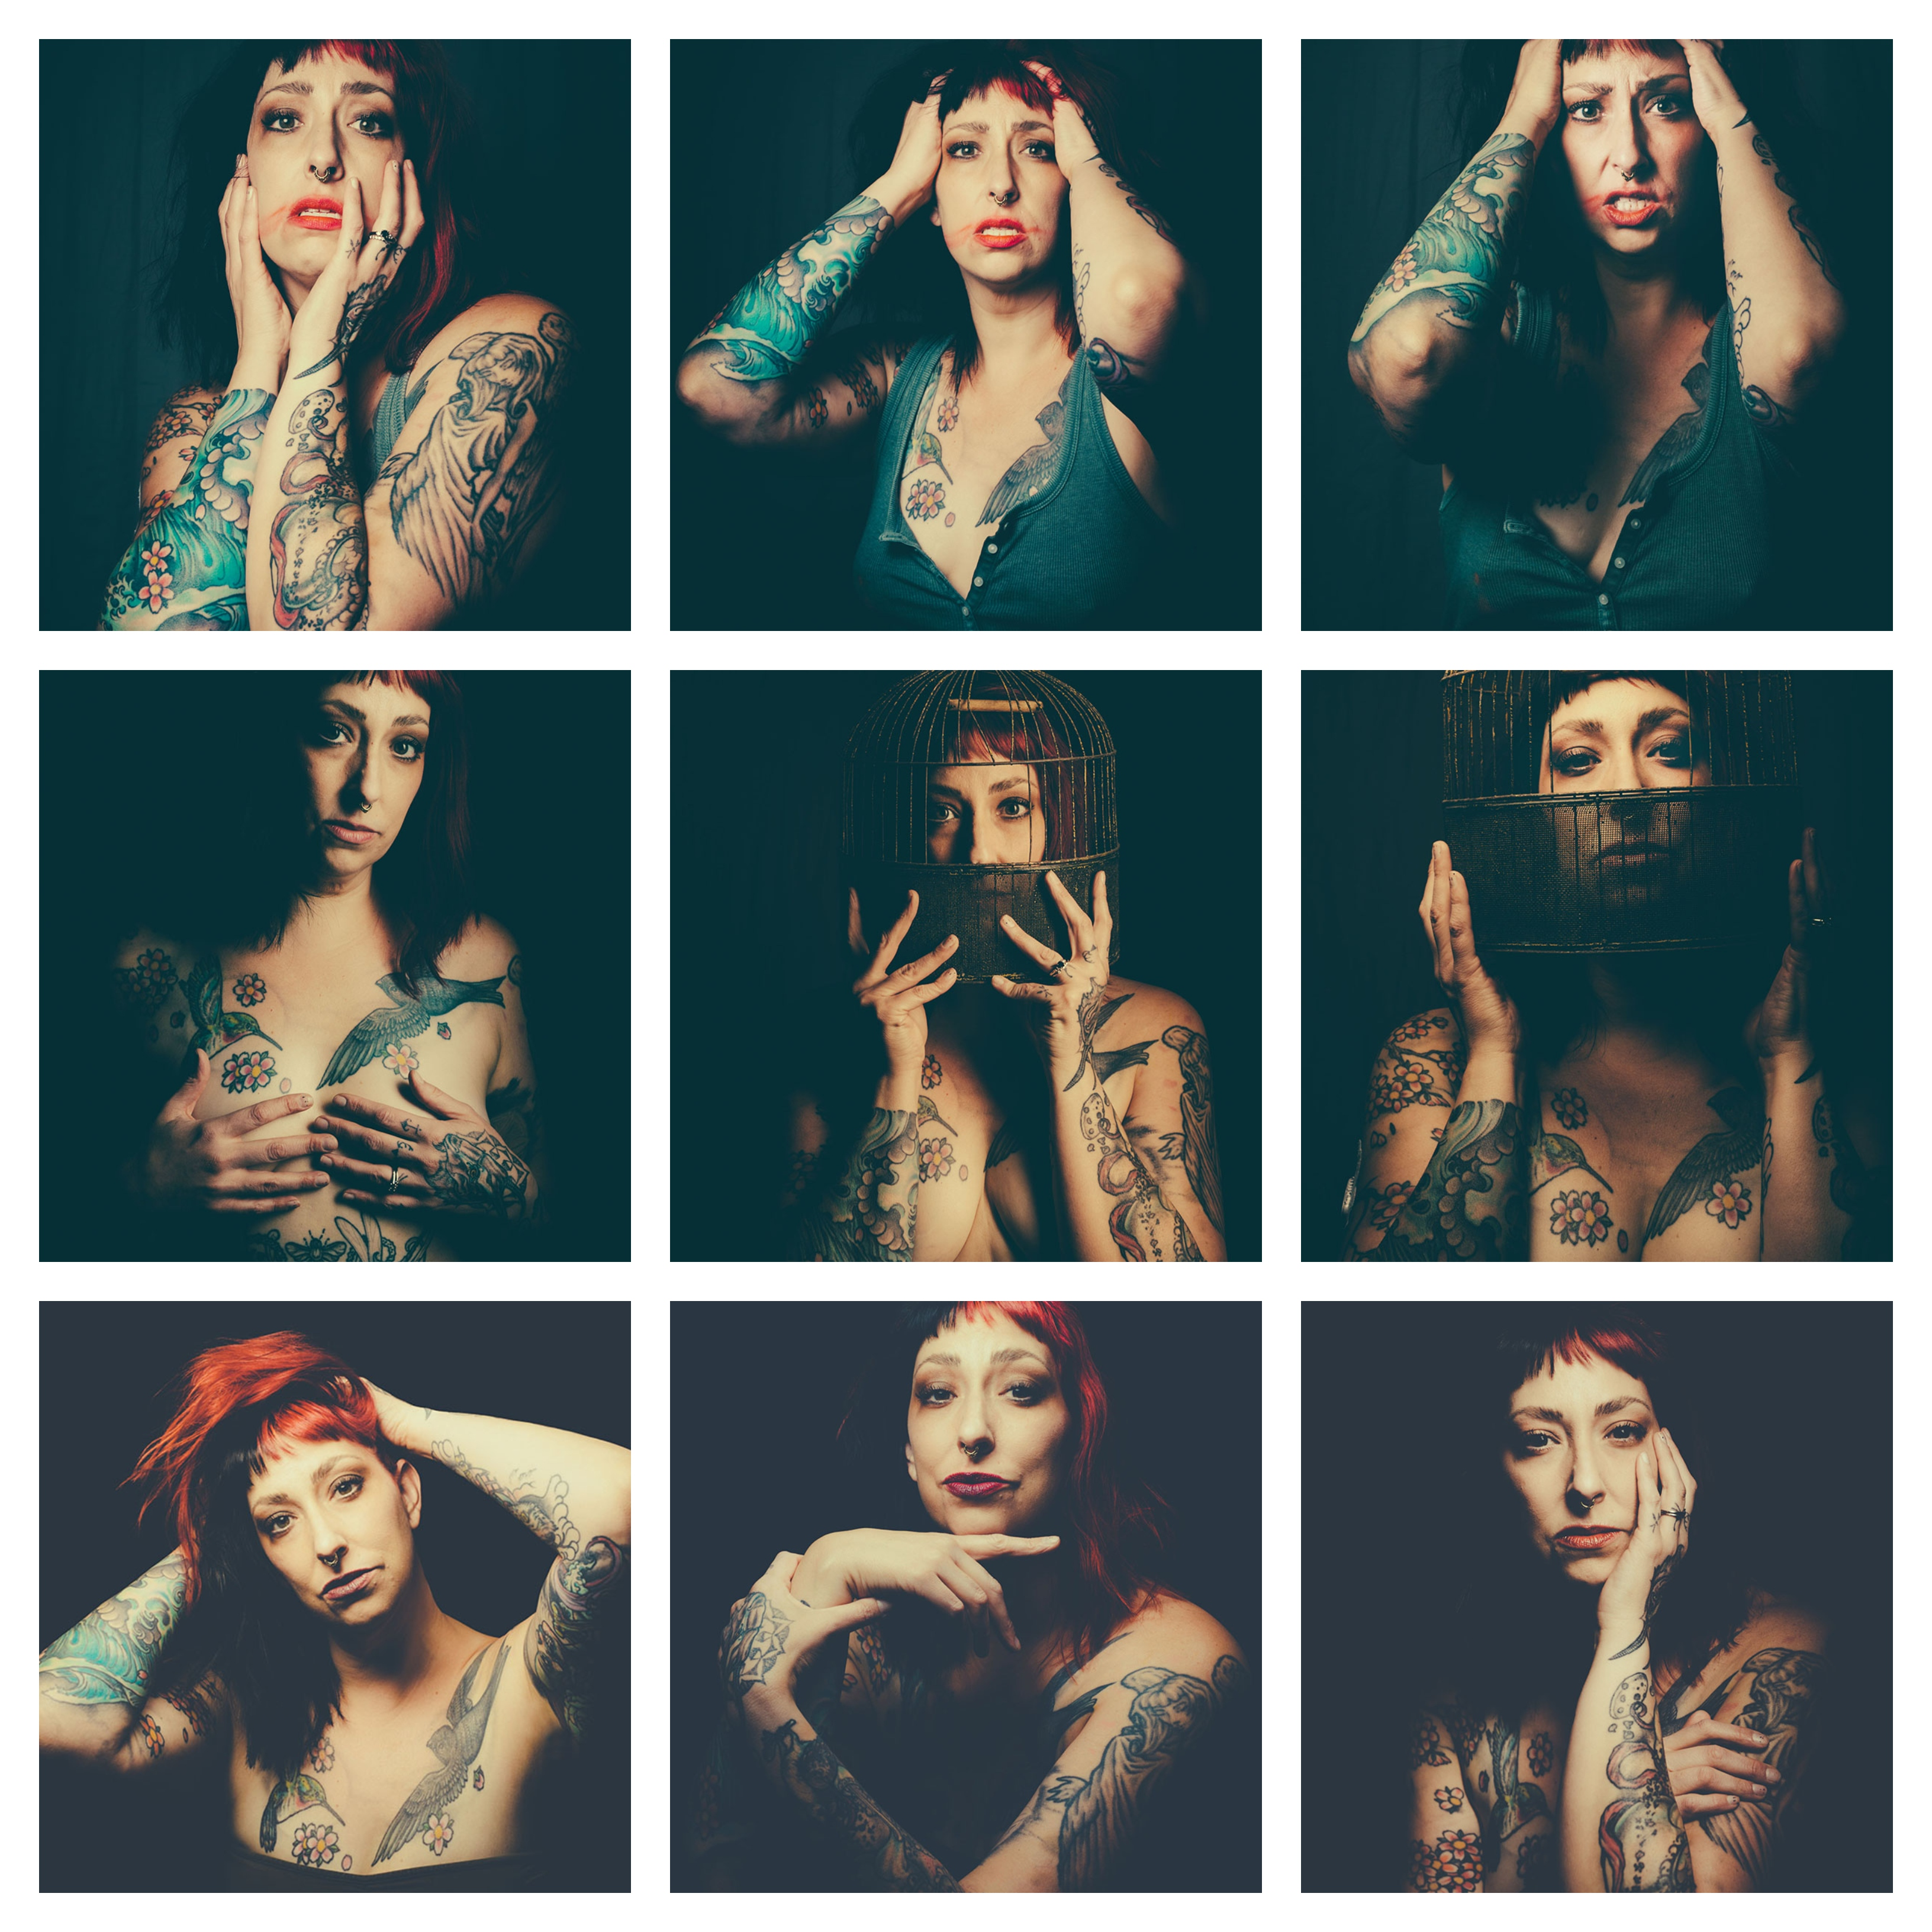 woman, body image issues, healing through photography